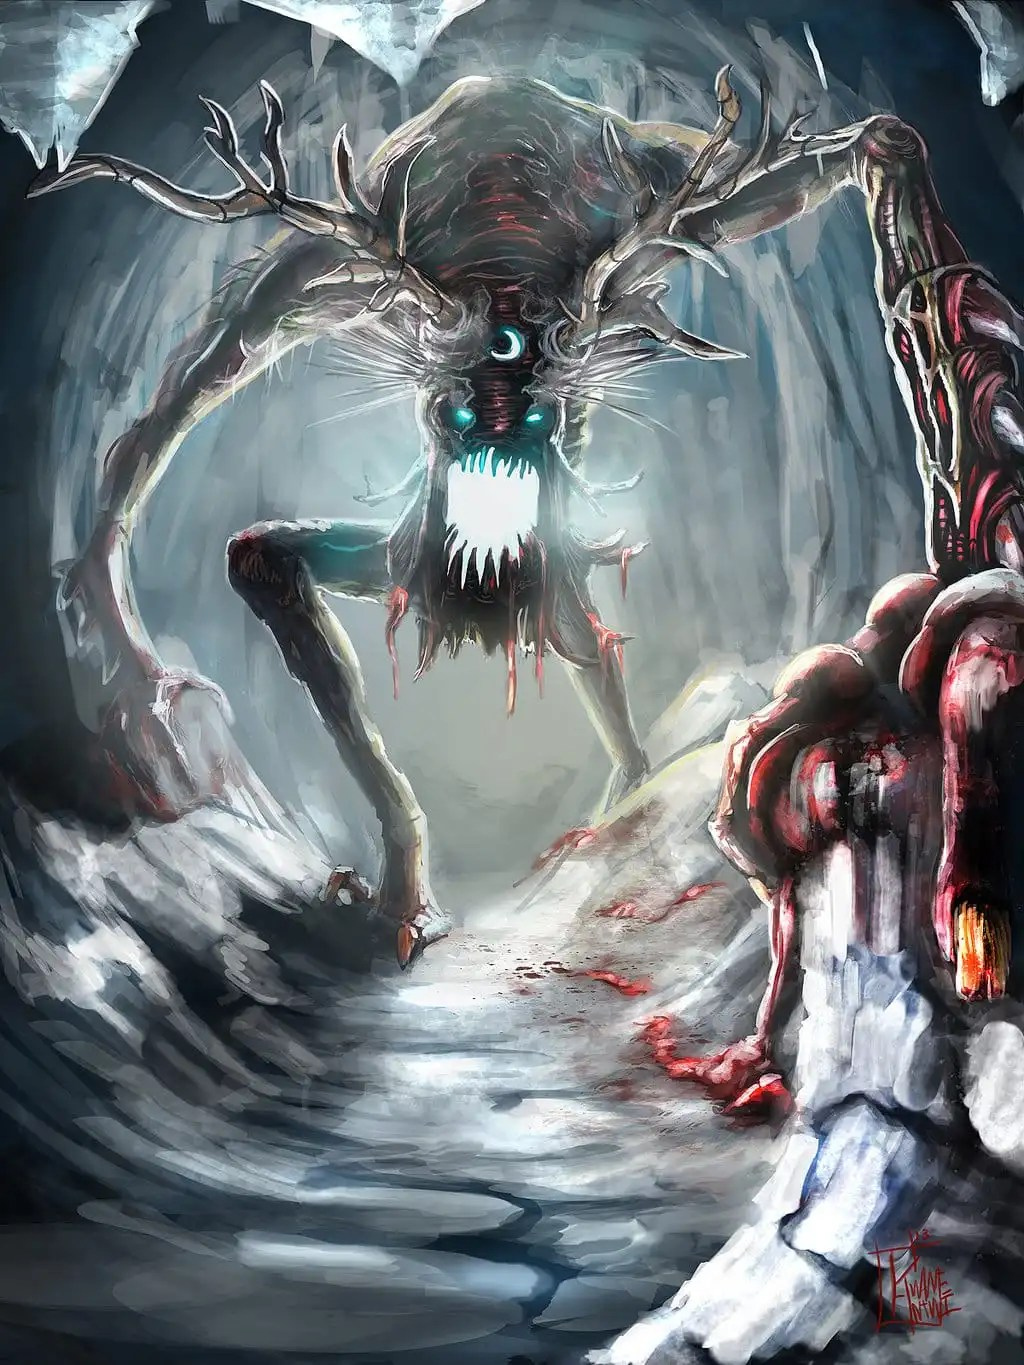 Mythical Creatures In The Fall Wallpaper Wendigo The Mythical Creature The Legend And Its Origin